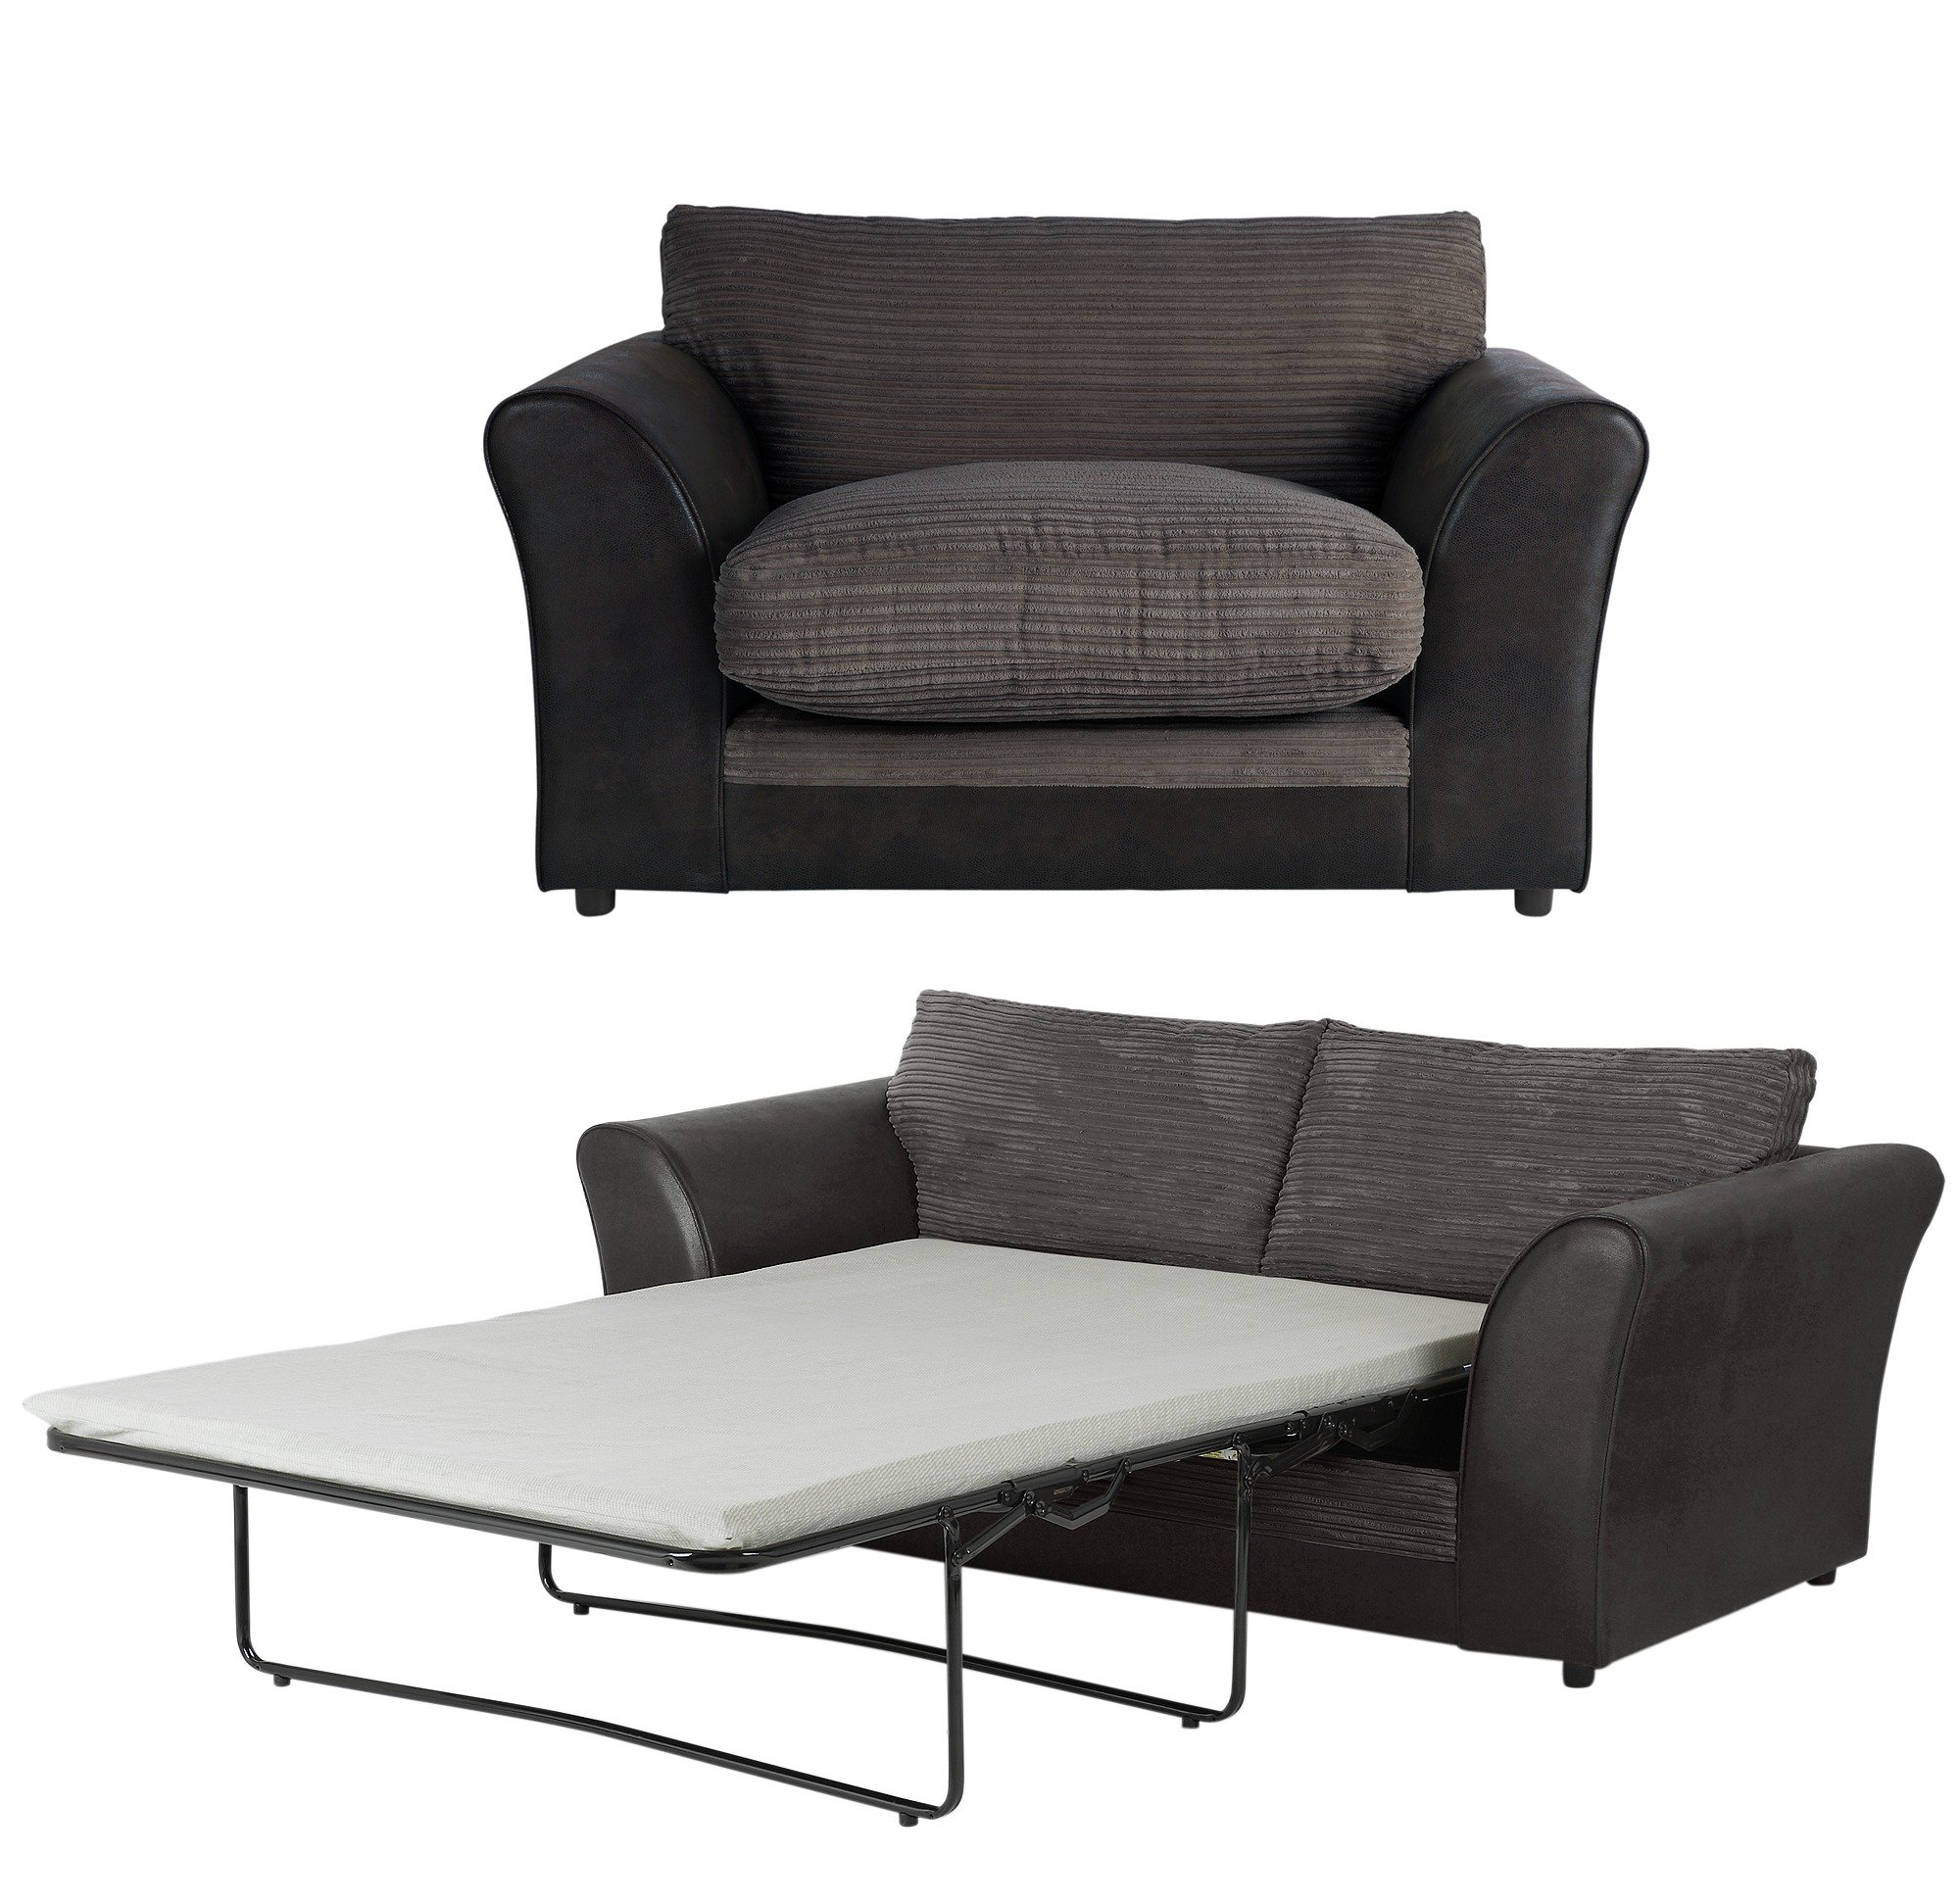 Sale On Home Harley 2 Seater Sofa Bed And Cuddle Chair